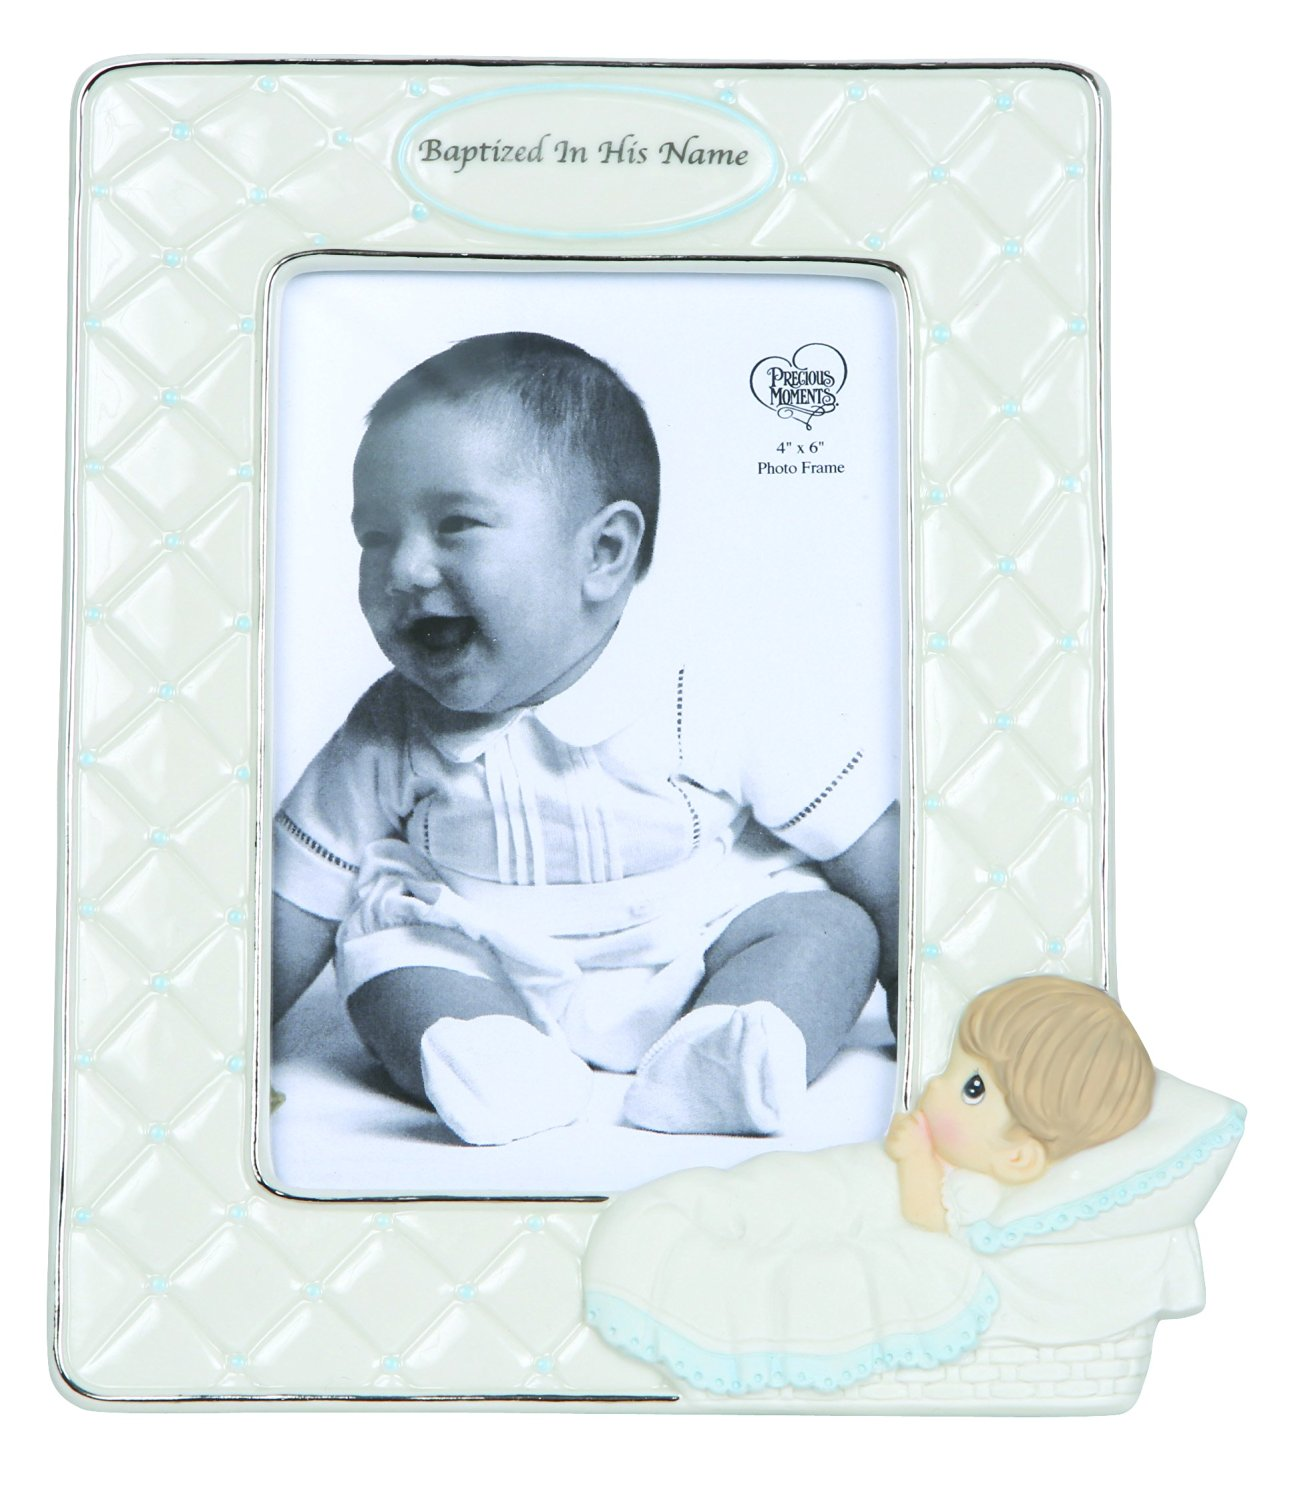 Precious Moments, Baptized In His Name, Bisque Porcelain Photo Frame, Boy, 143401